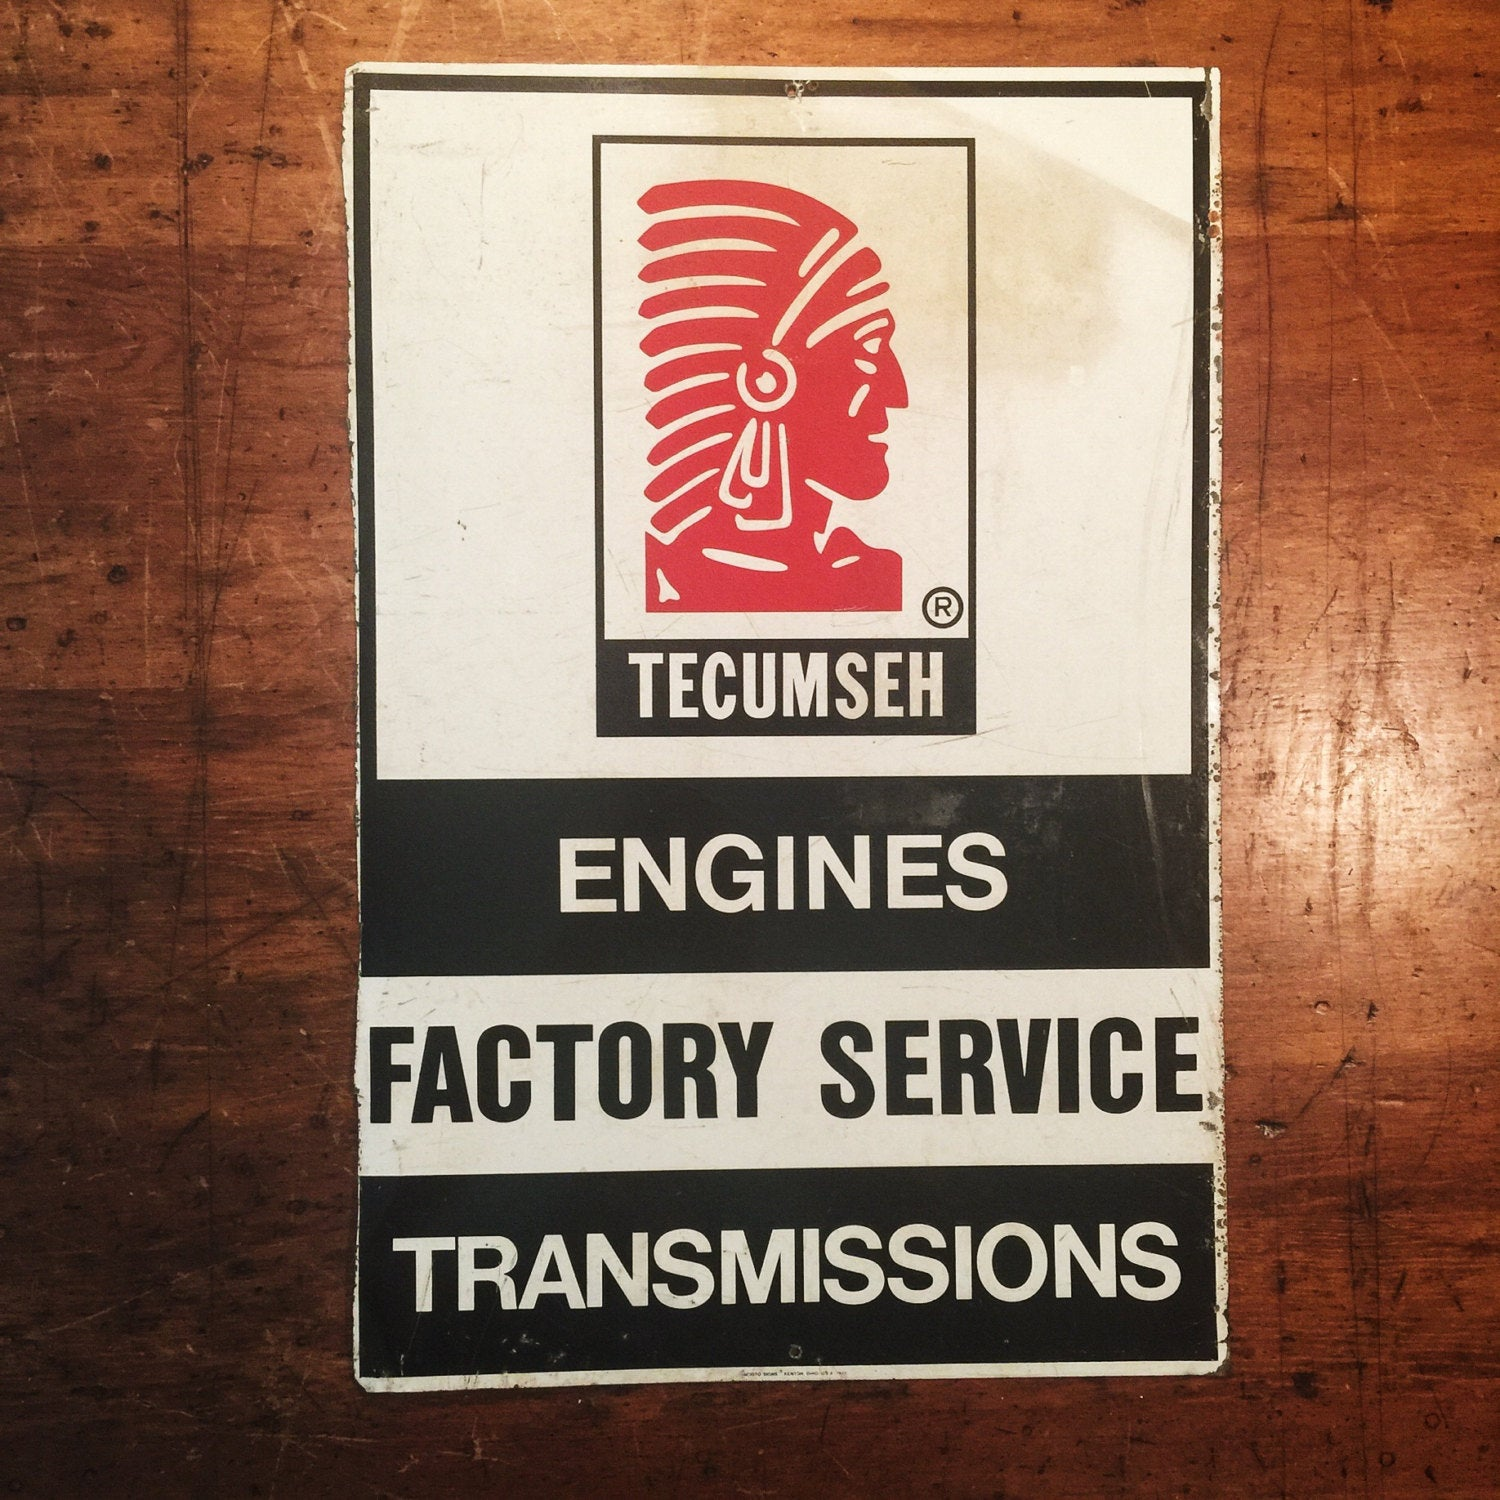 Vintage Tecumseh Flange Sign -  Double-Sided - Engines  Factory Service Transmissions - 1970s - Petroliana - 24 x 16